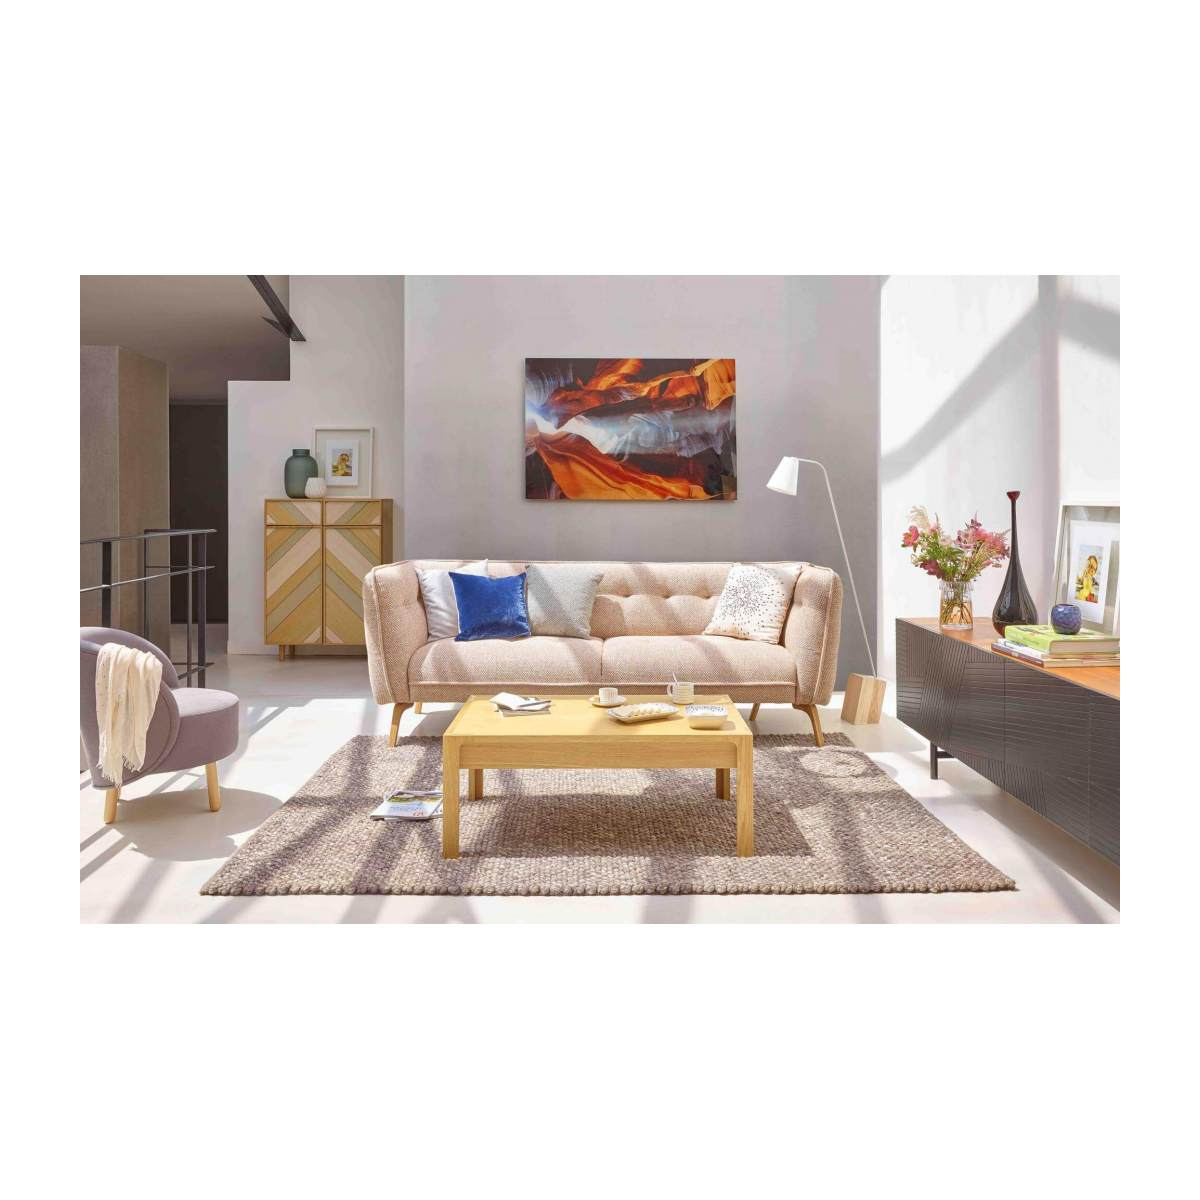 2 seater sofa in Lecce fabric, muscat and natural oak feet n°6